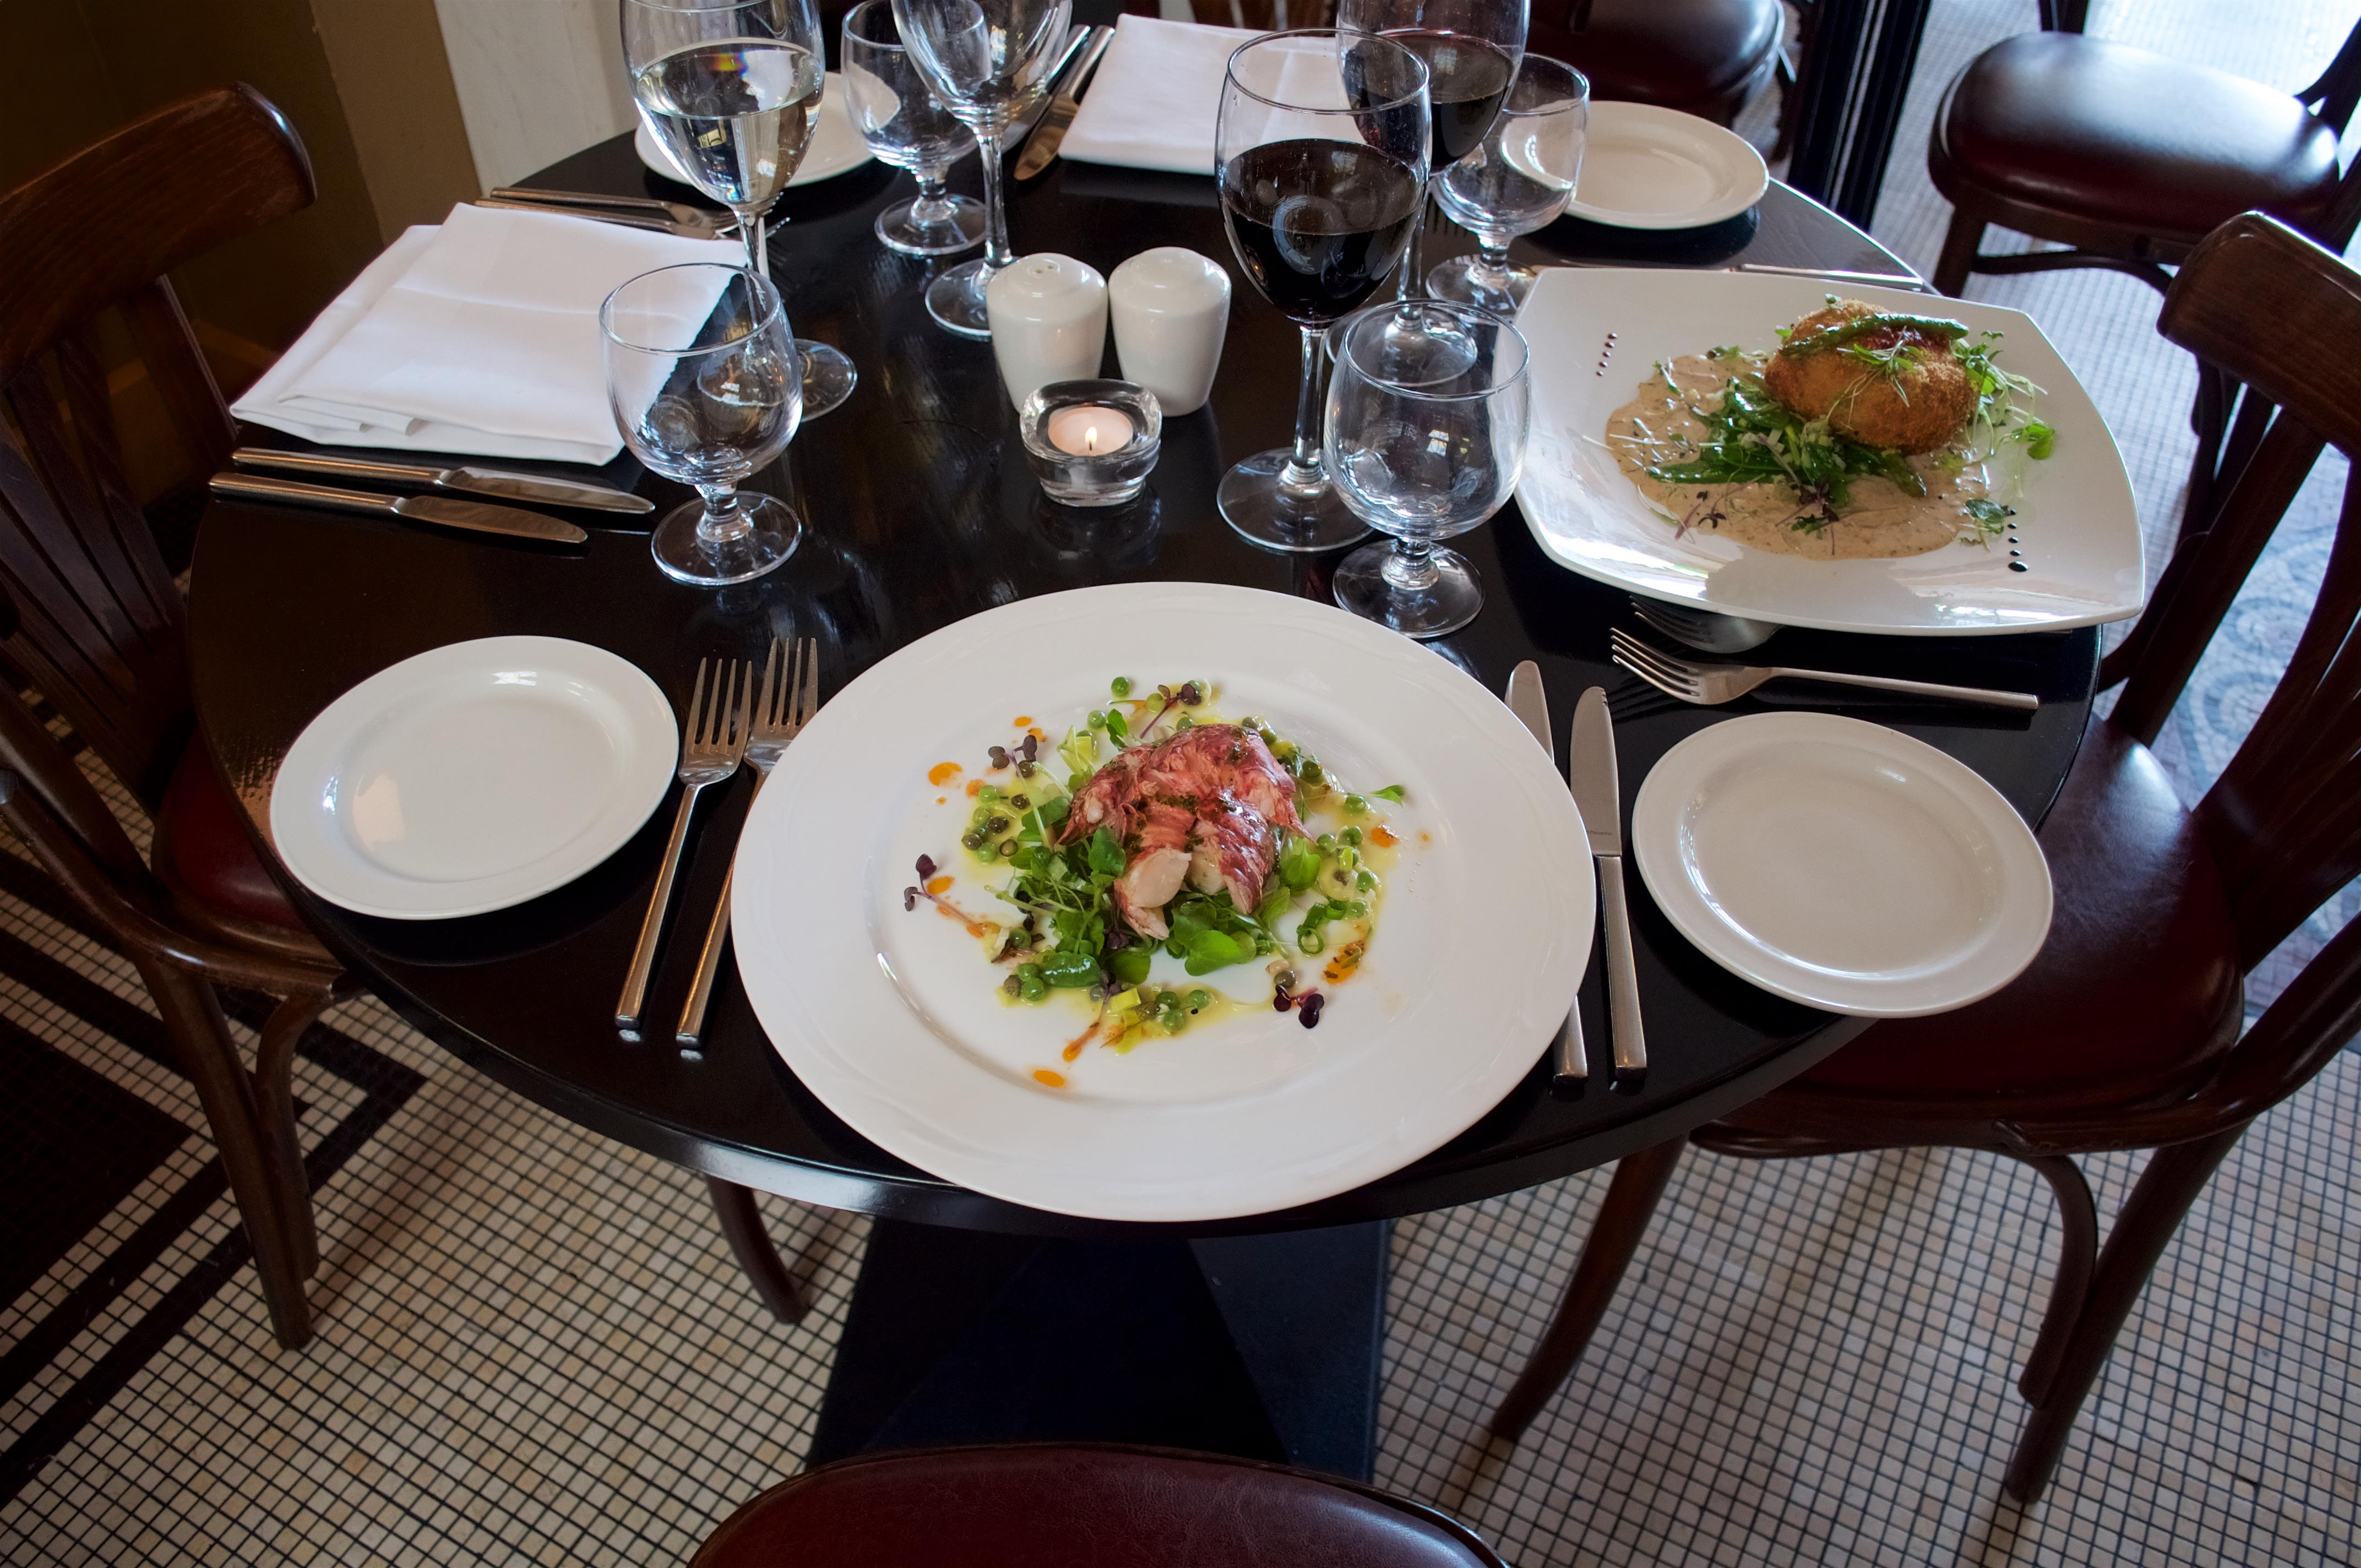 Table Setting in Restaurant  Picography Free Photo